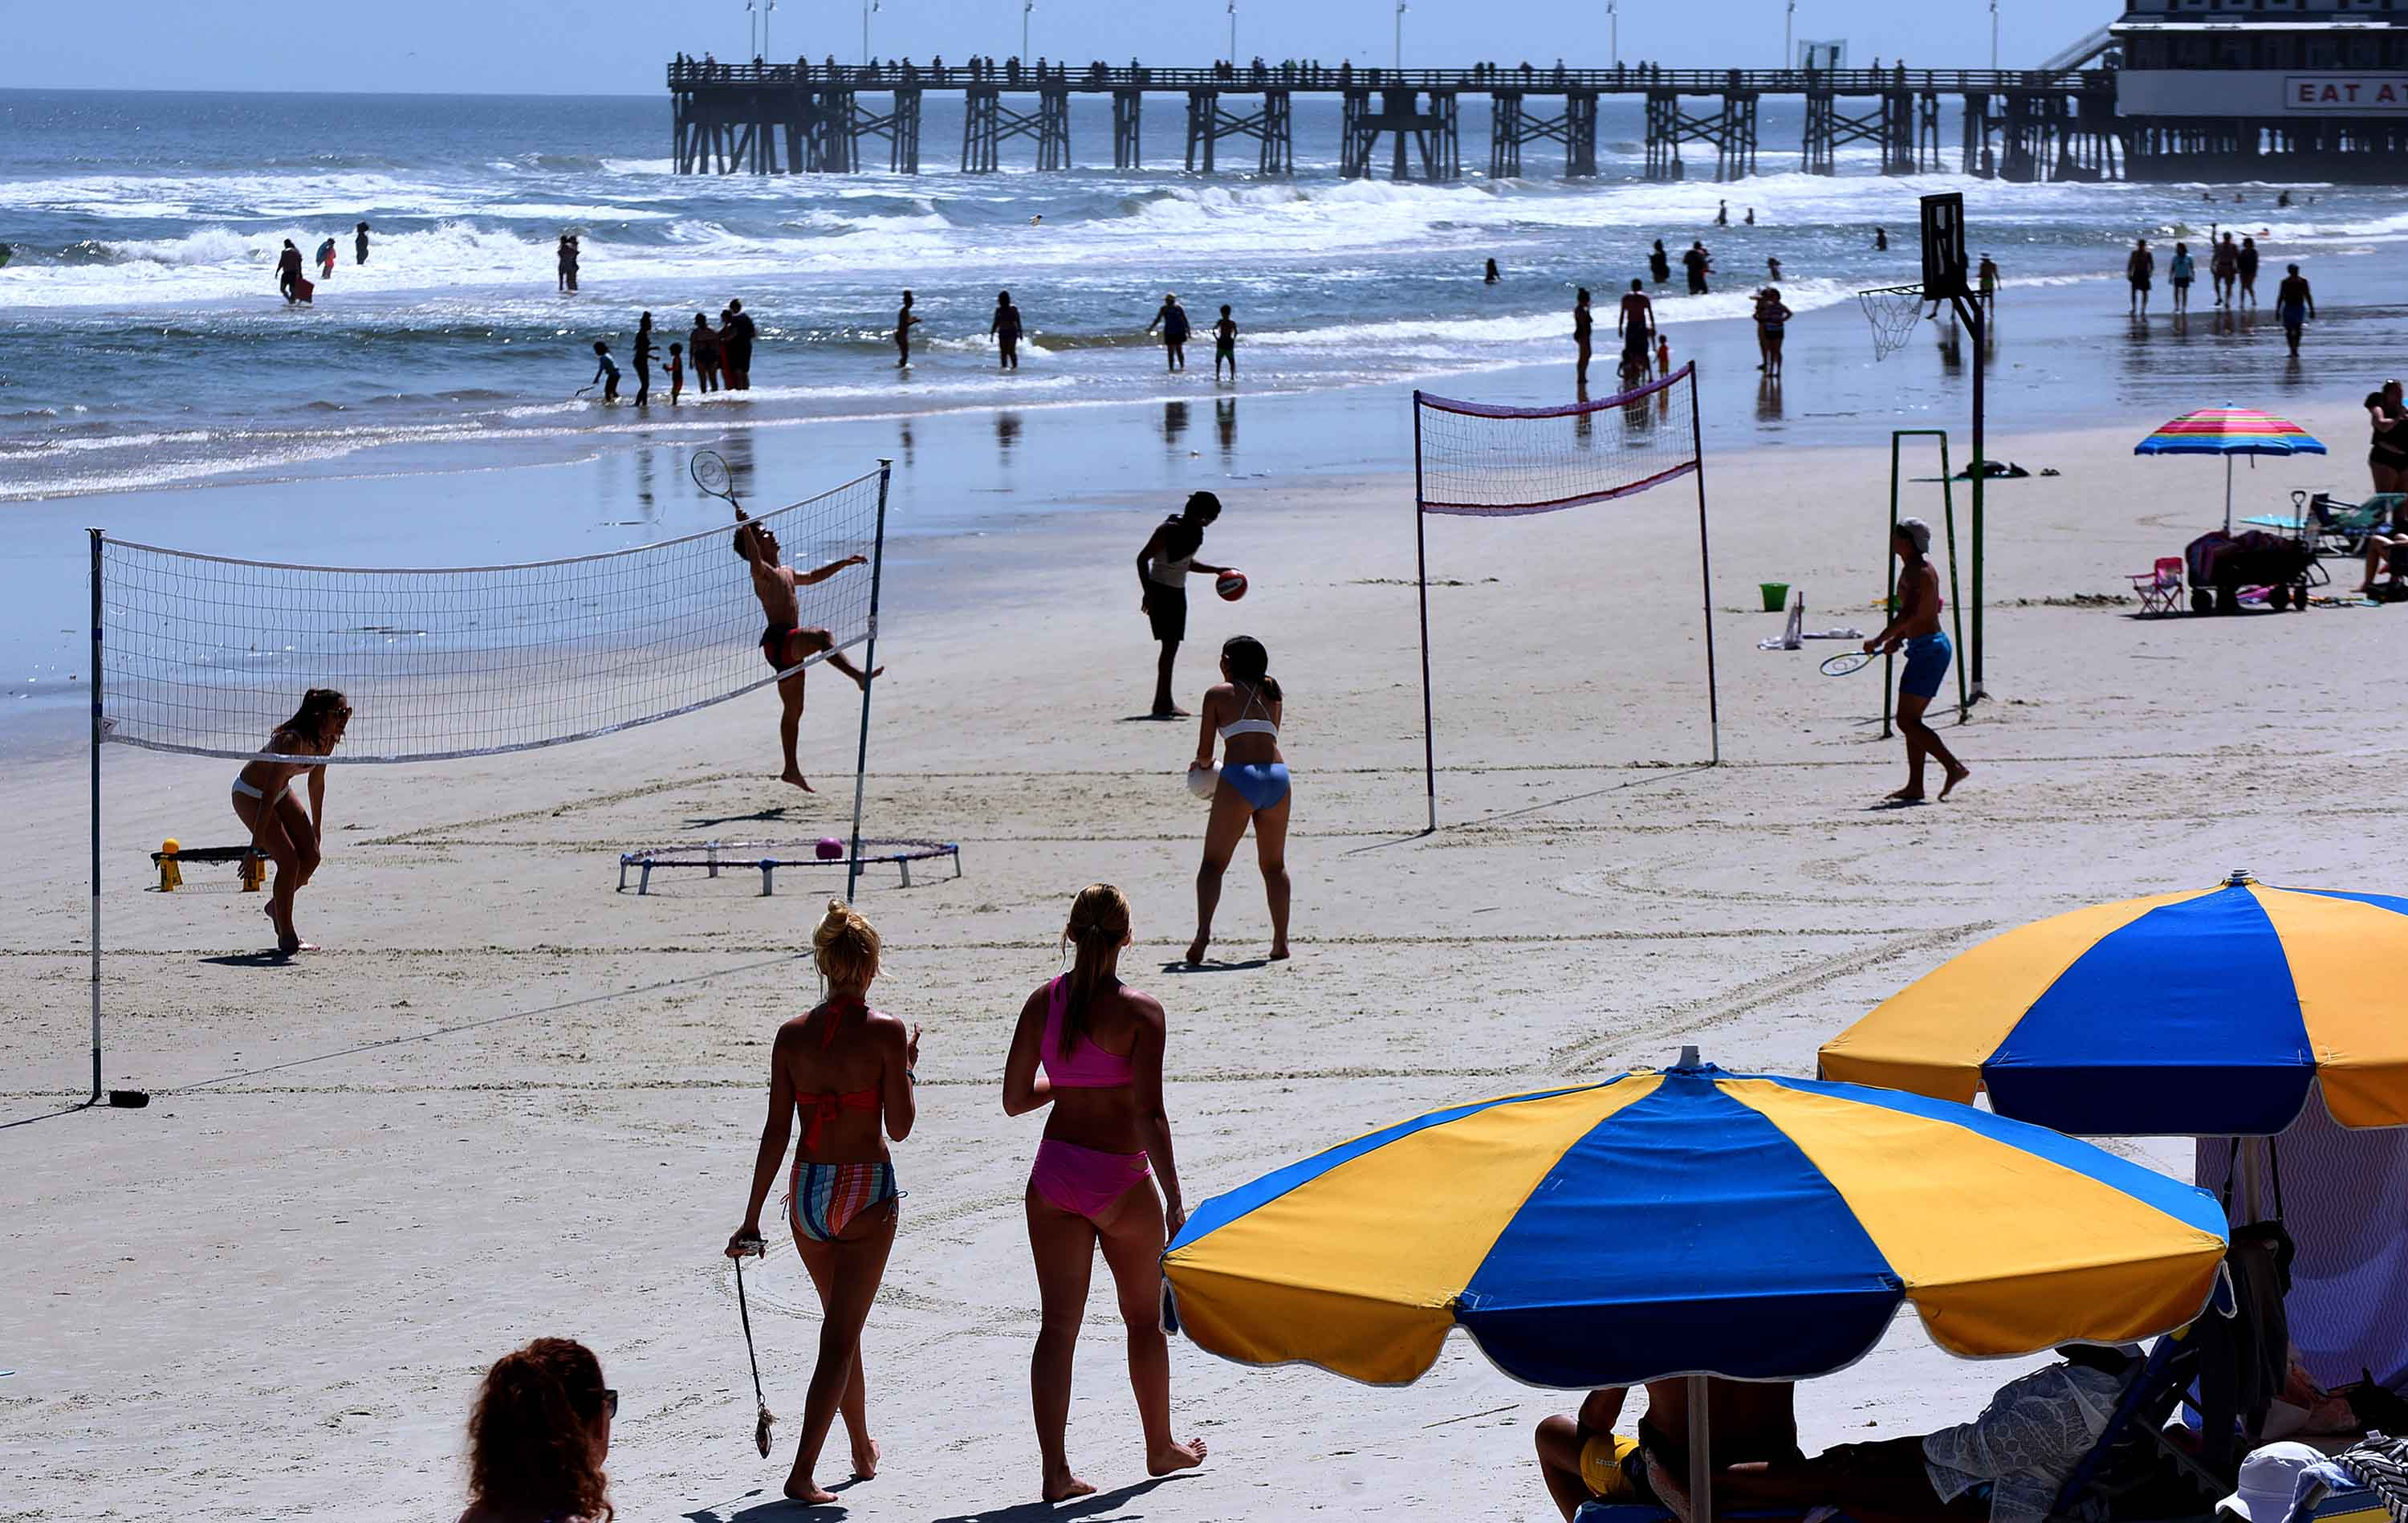 People play volleyball in Daytona Beach, on March 24, as college students arrive in Florida for spring break.